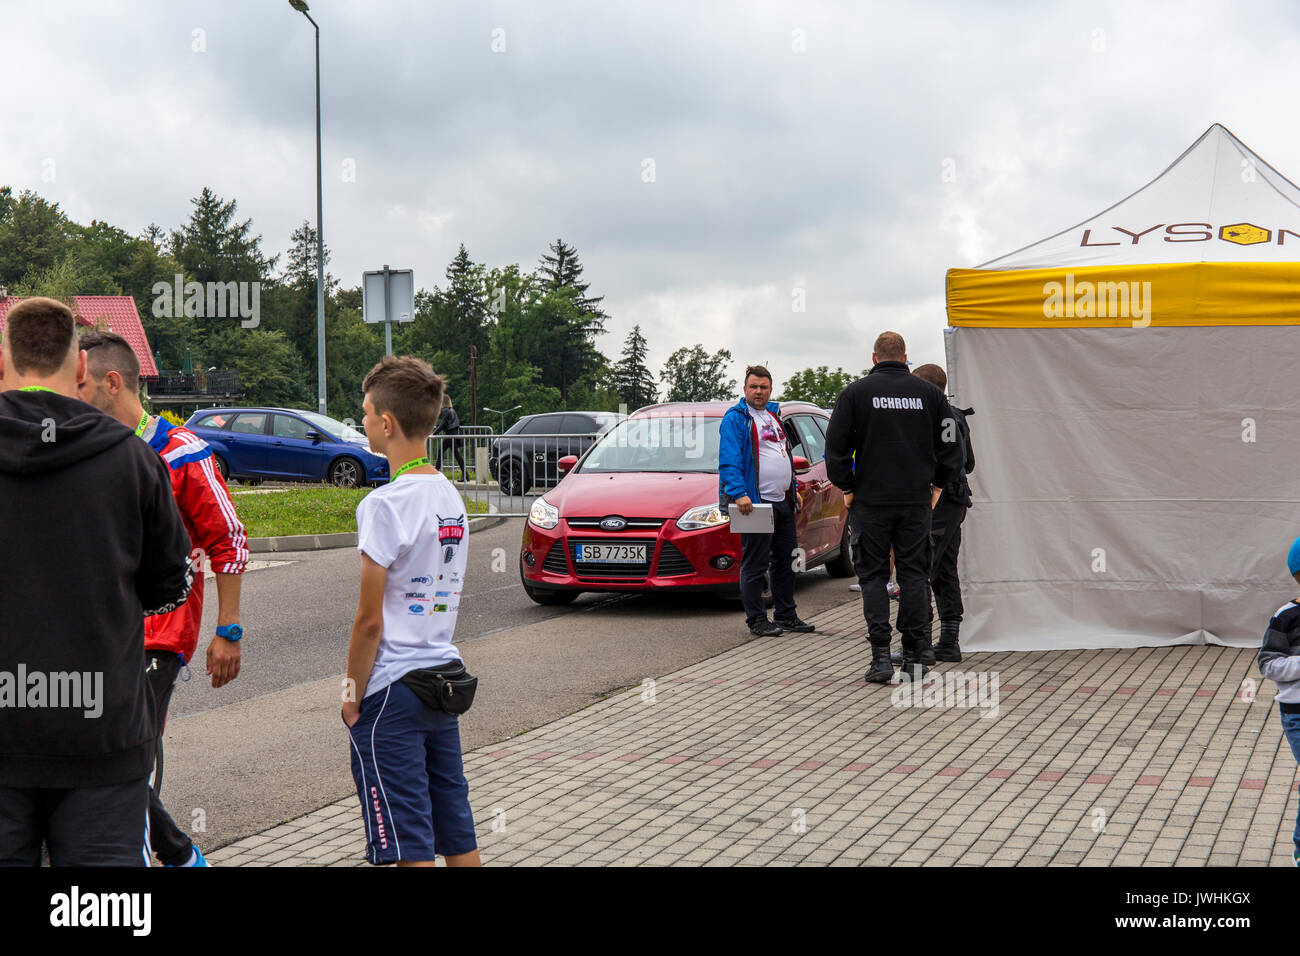 Bielsko-Biala, Poland. 12th Aug, 2017. International automotive trade fairs - MotoShow Bielsko-Biala. People standing at the entrance to the motoshow. Credit: Lukasz Obermann/Alamy Live News - Stock Image